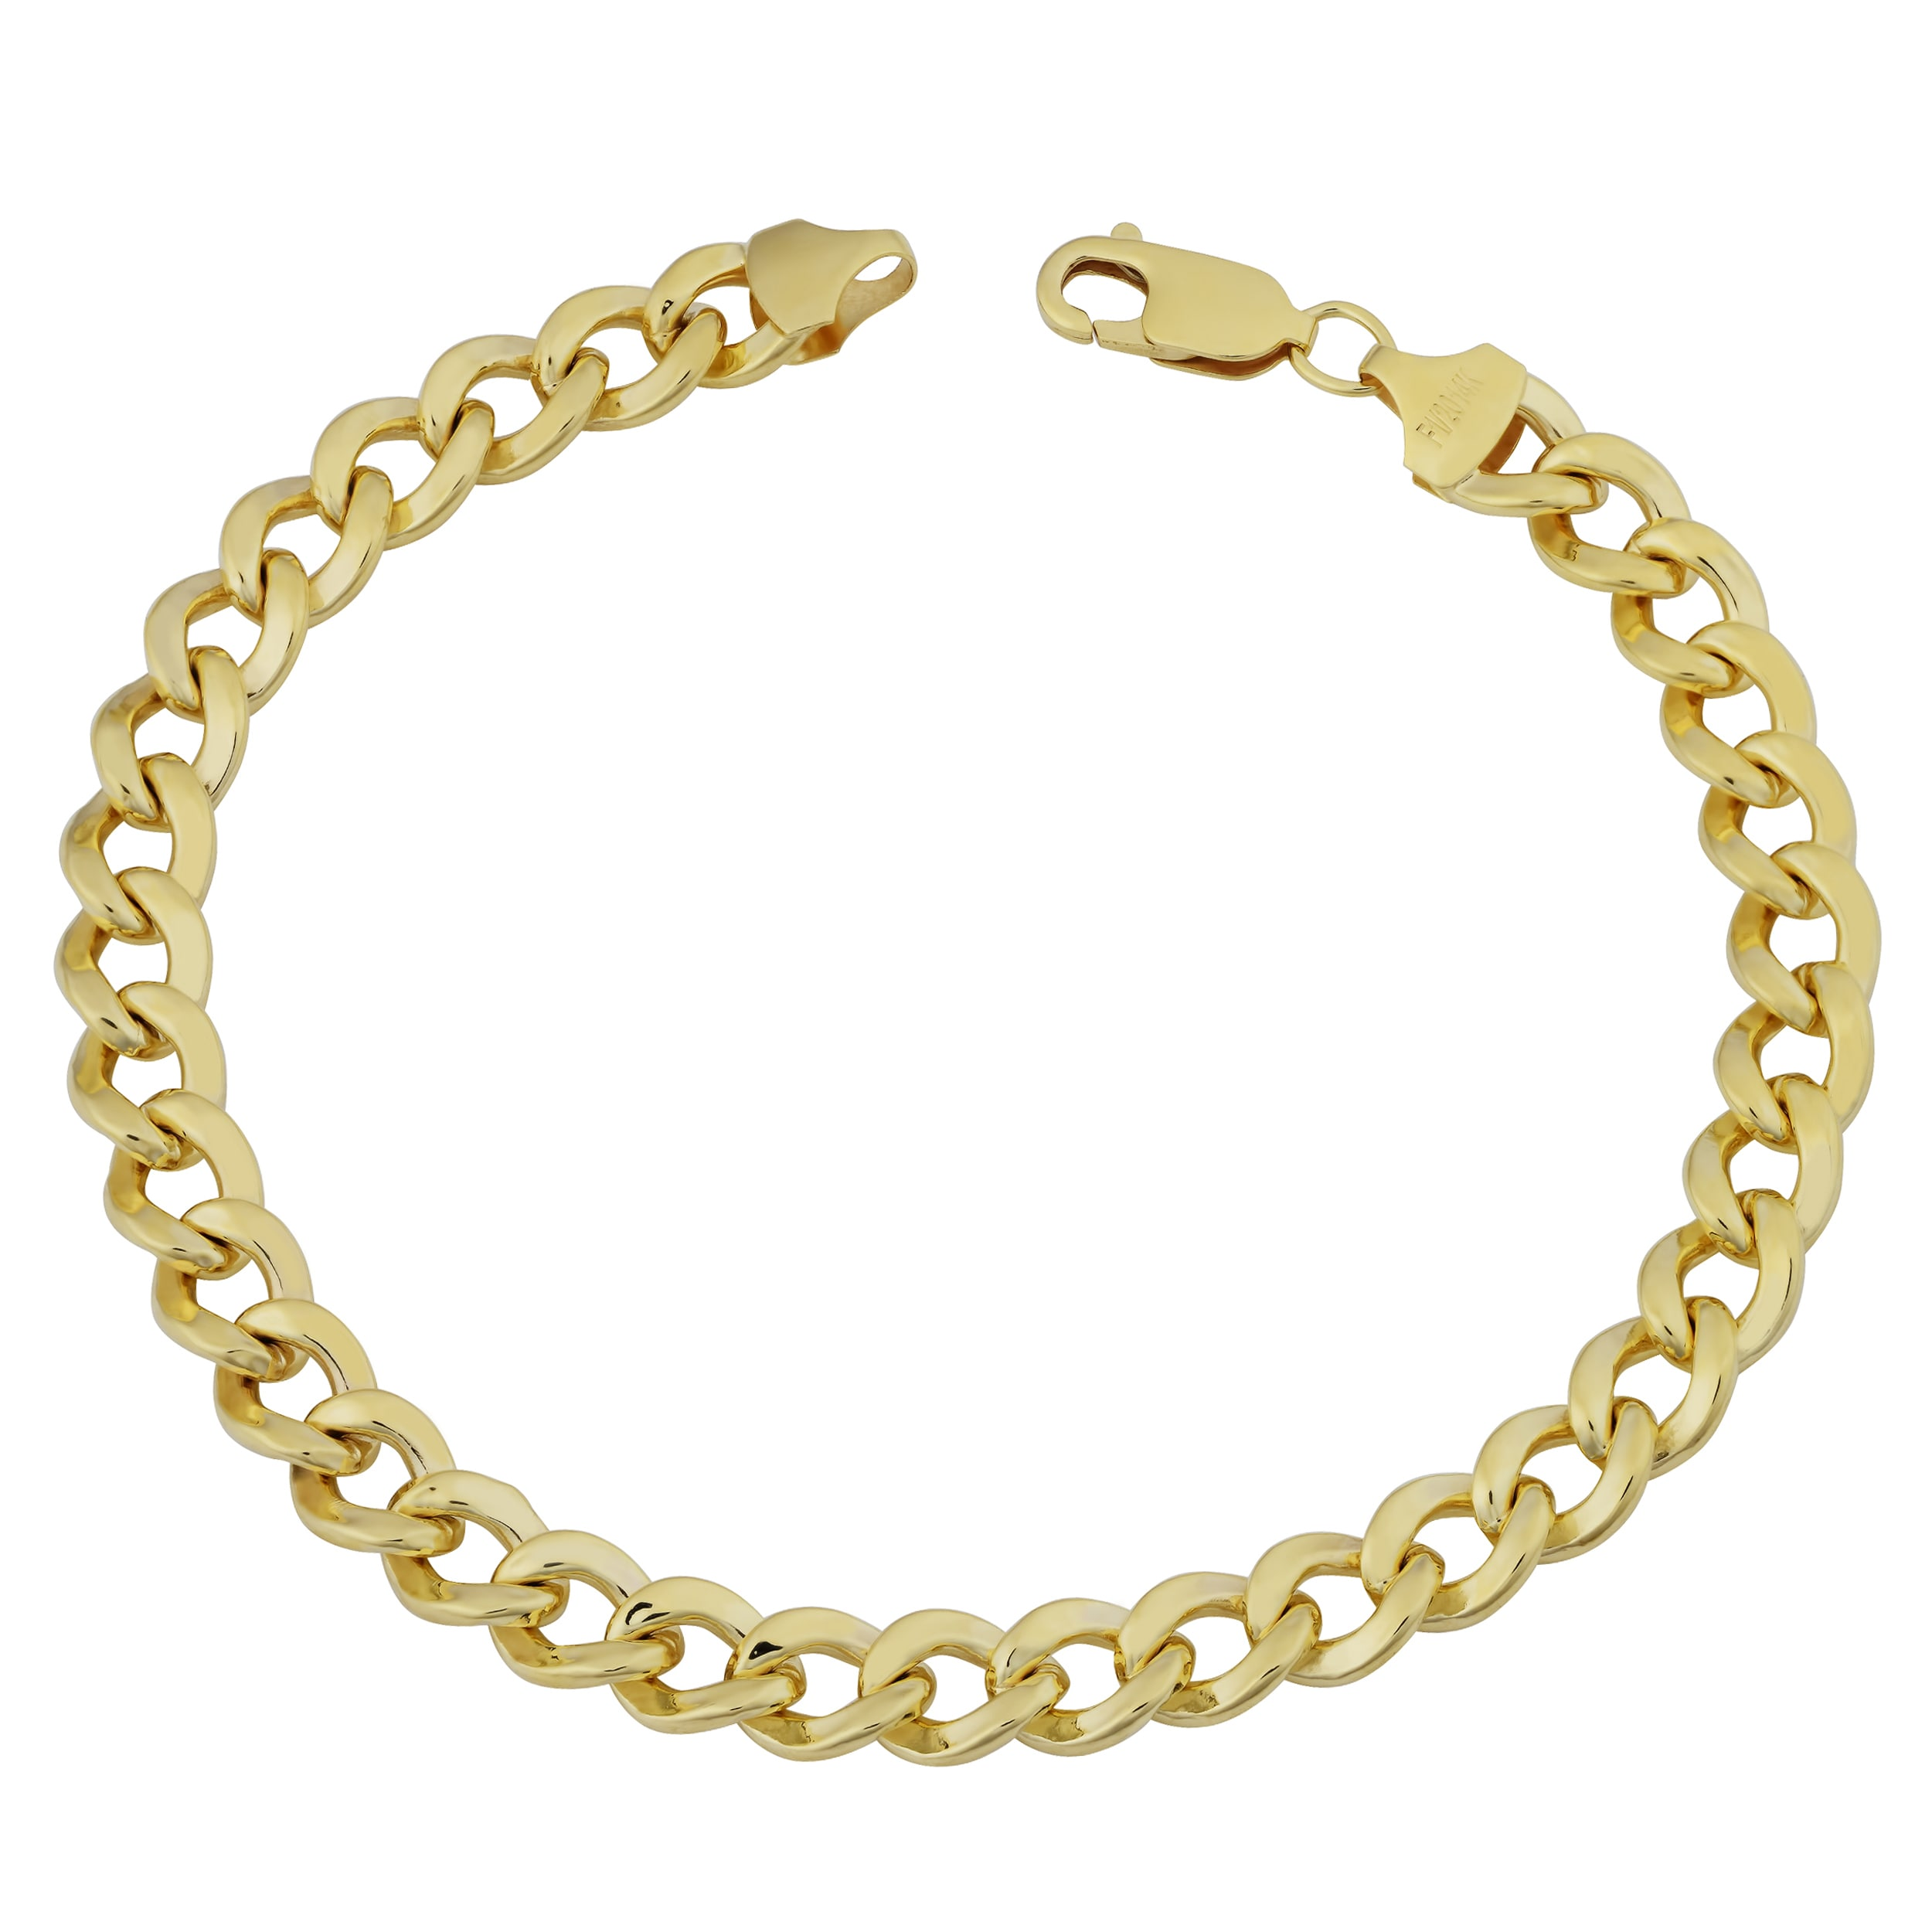 df2cc8ec5 Fremada 14k Yellow Gold Filled 9mm High Polish Bold Men's Miami Cuban Curb  Link 9-inch Chain Bracelet